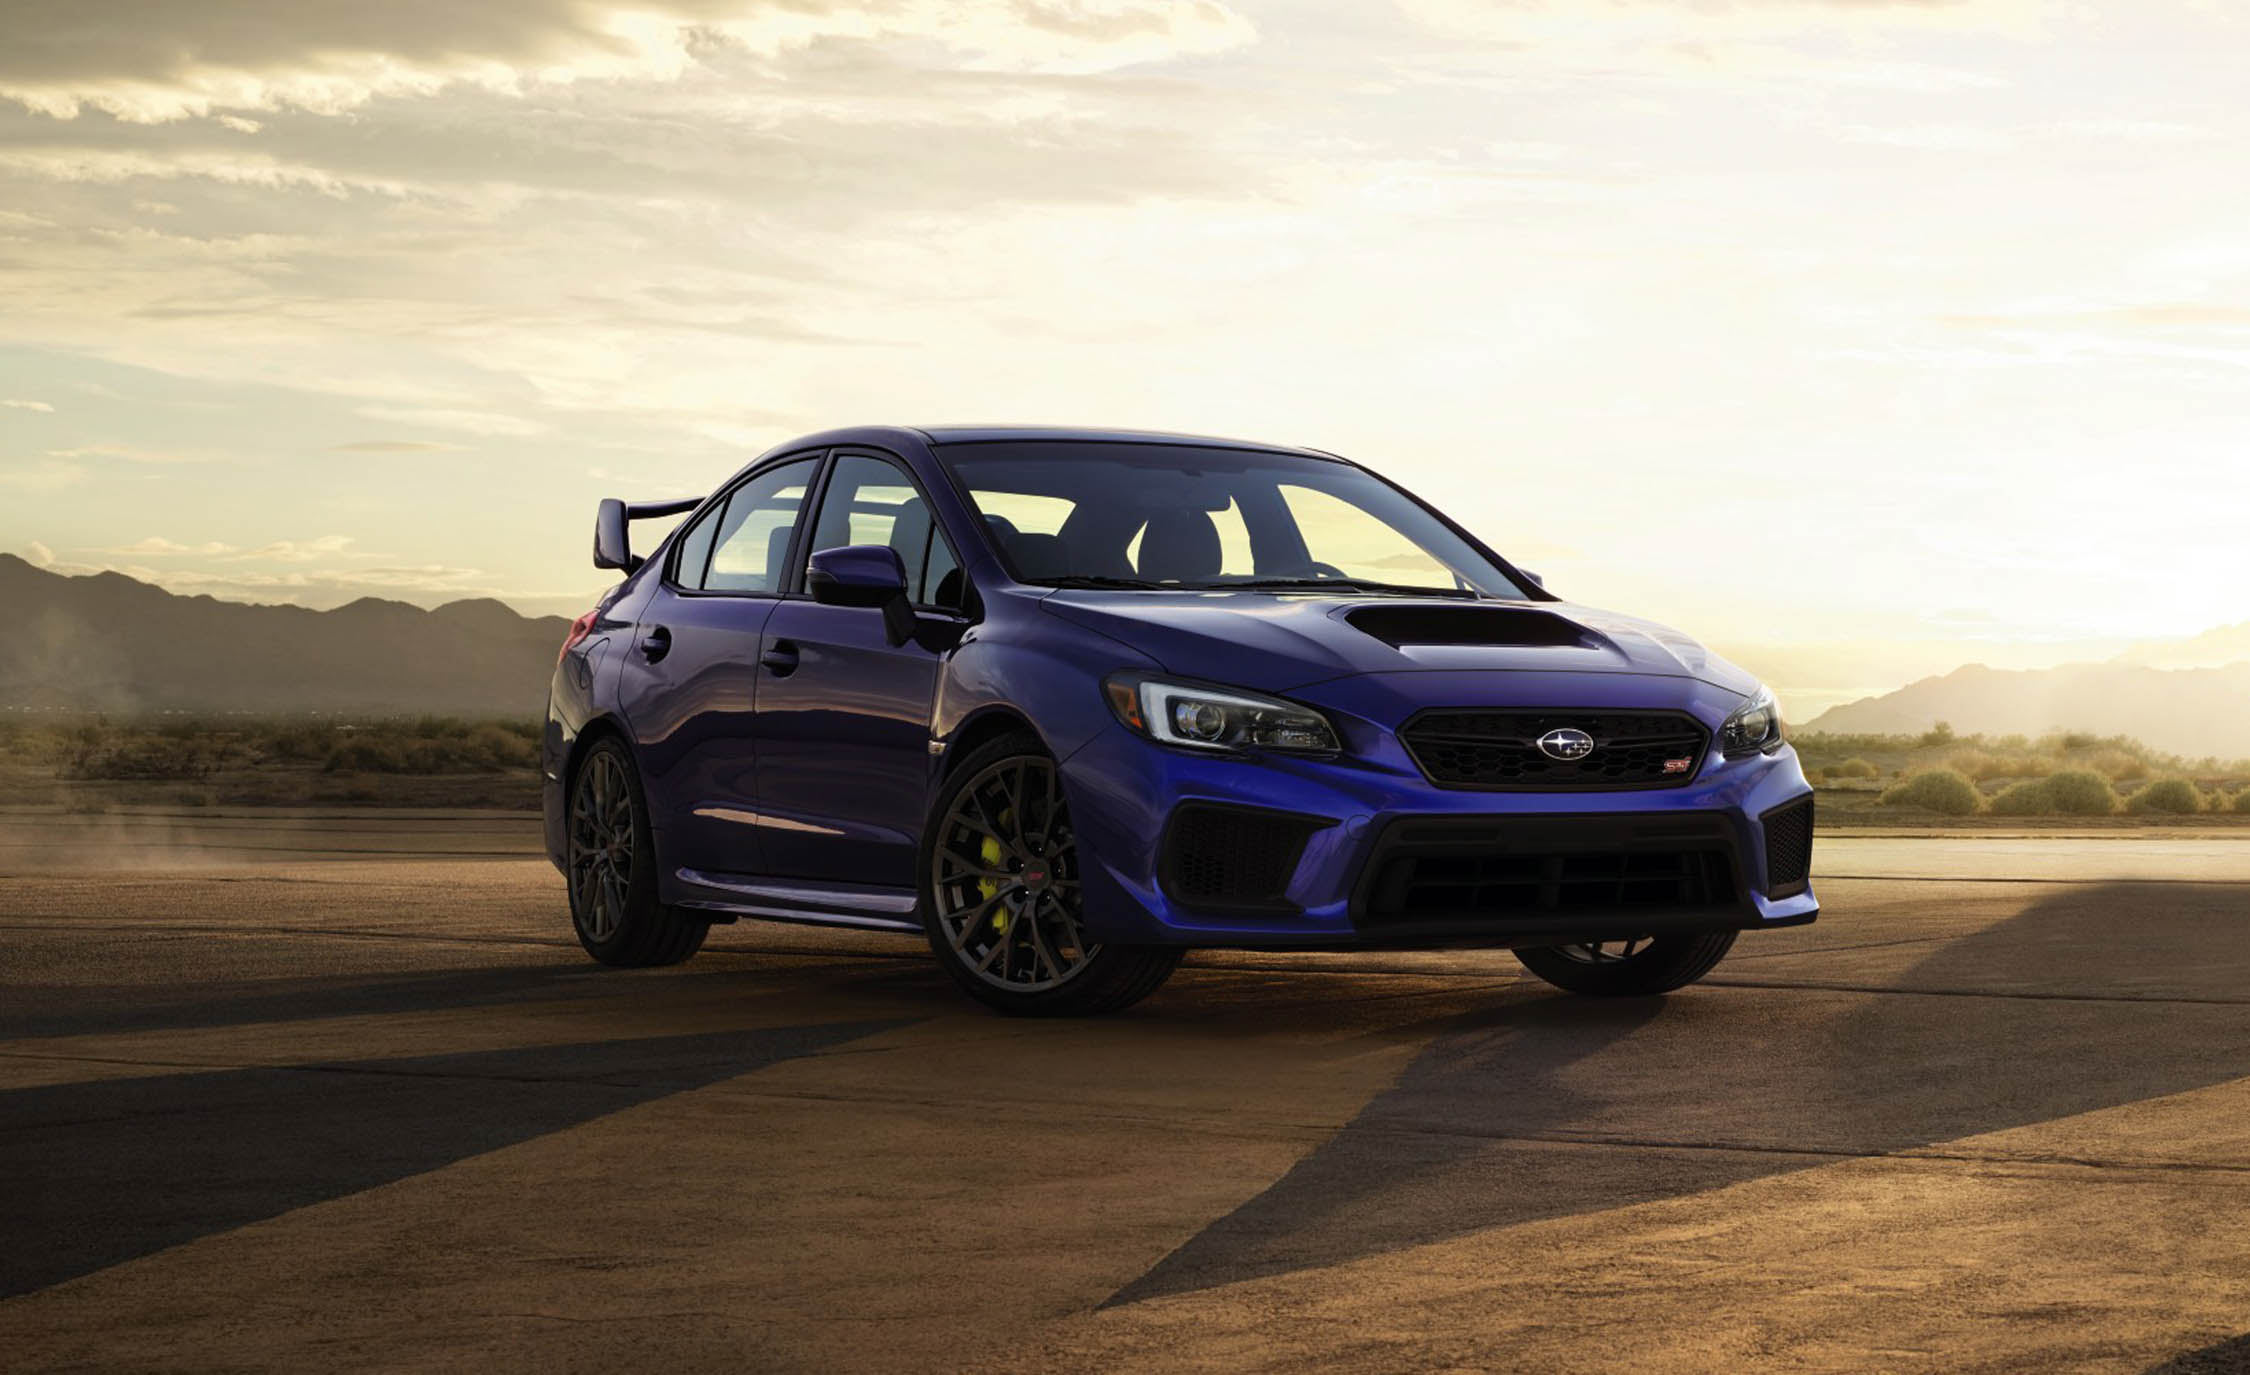 2018 Subaru WRX Pictures Gallery (14 Images)